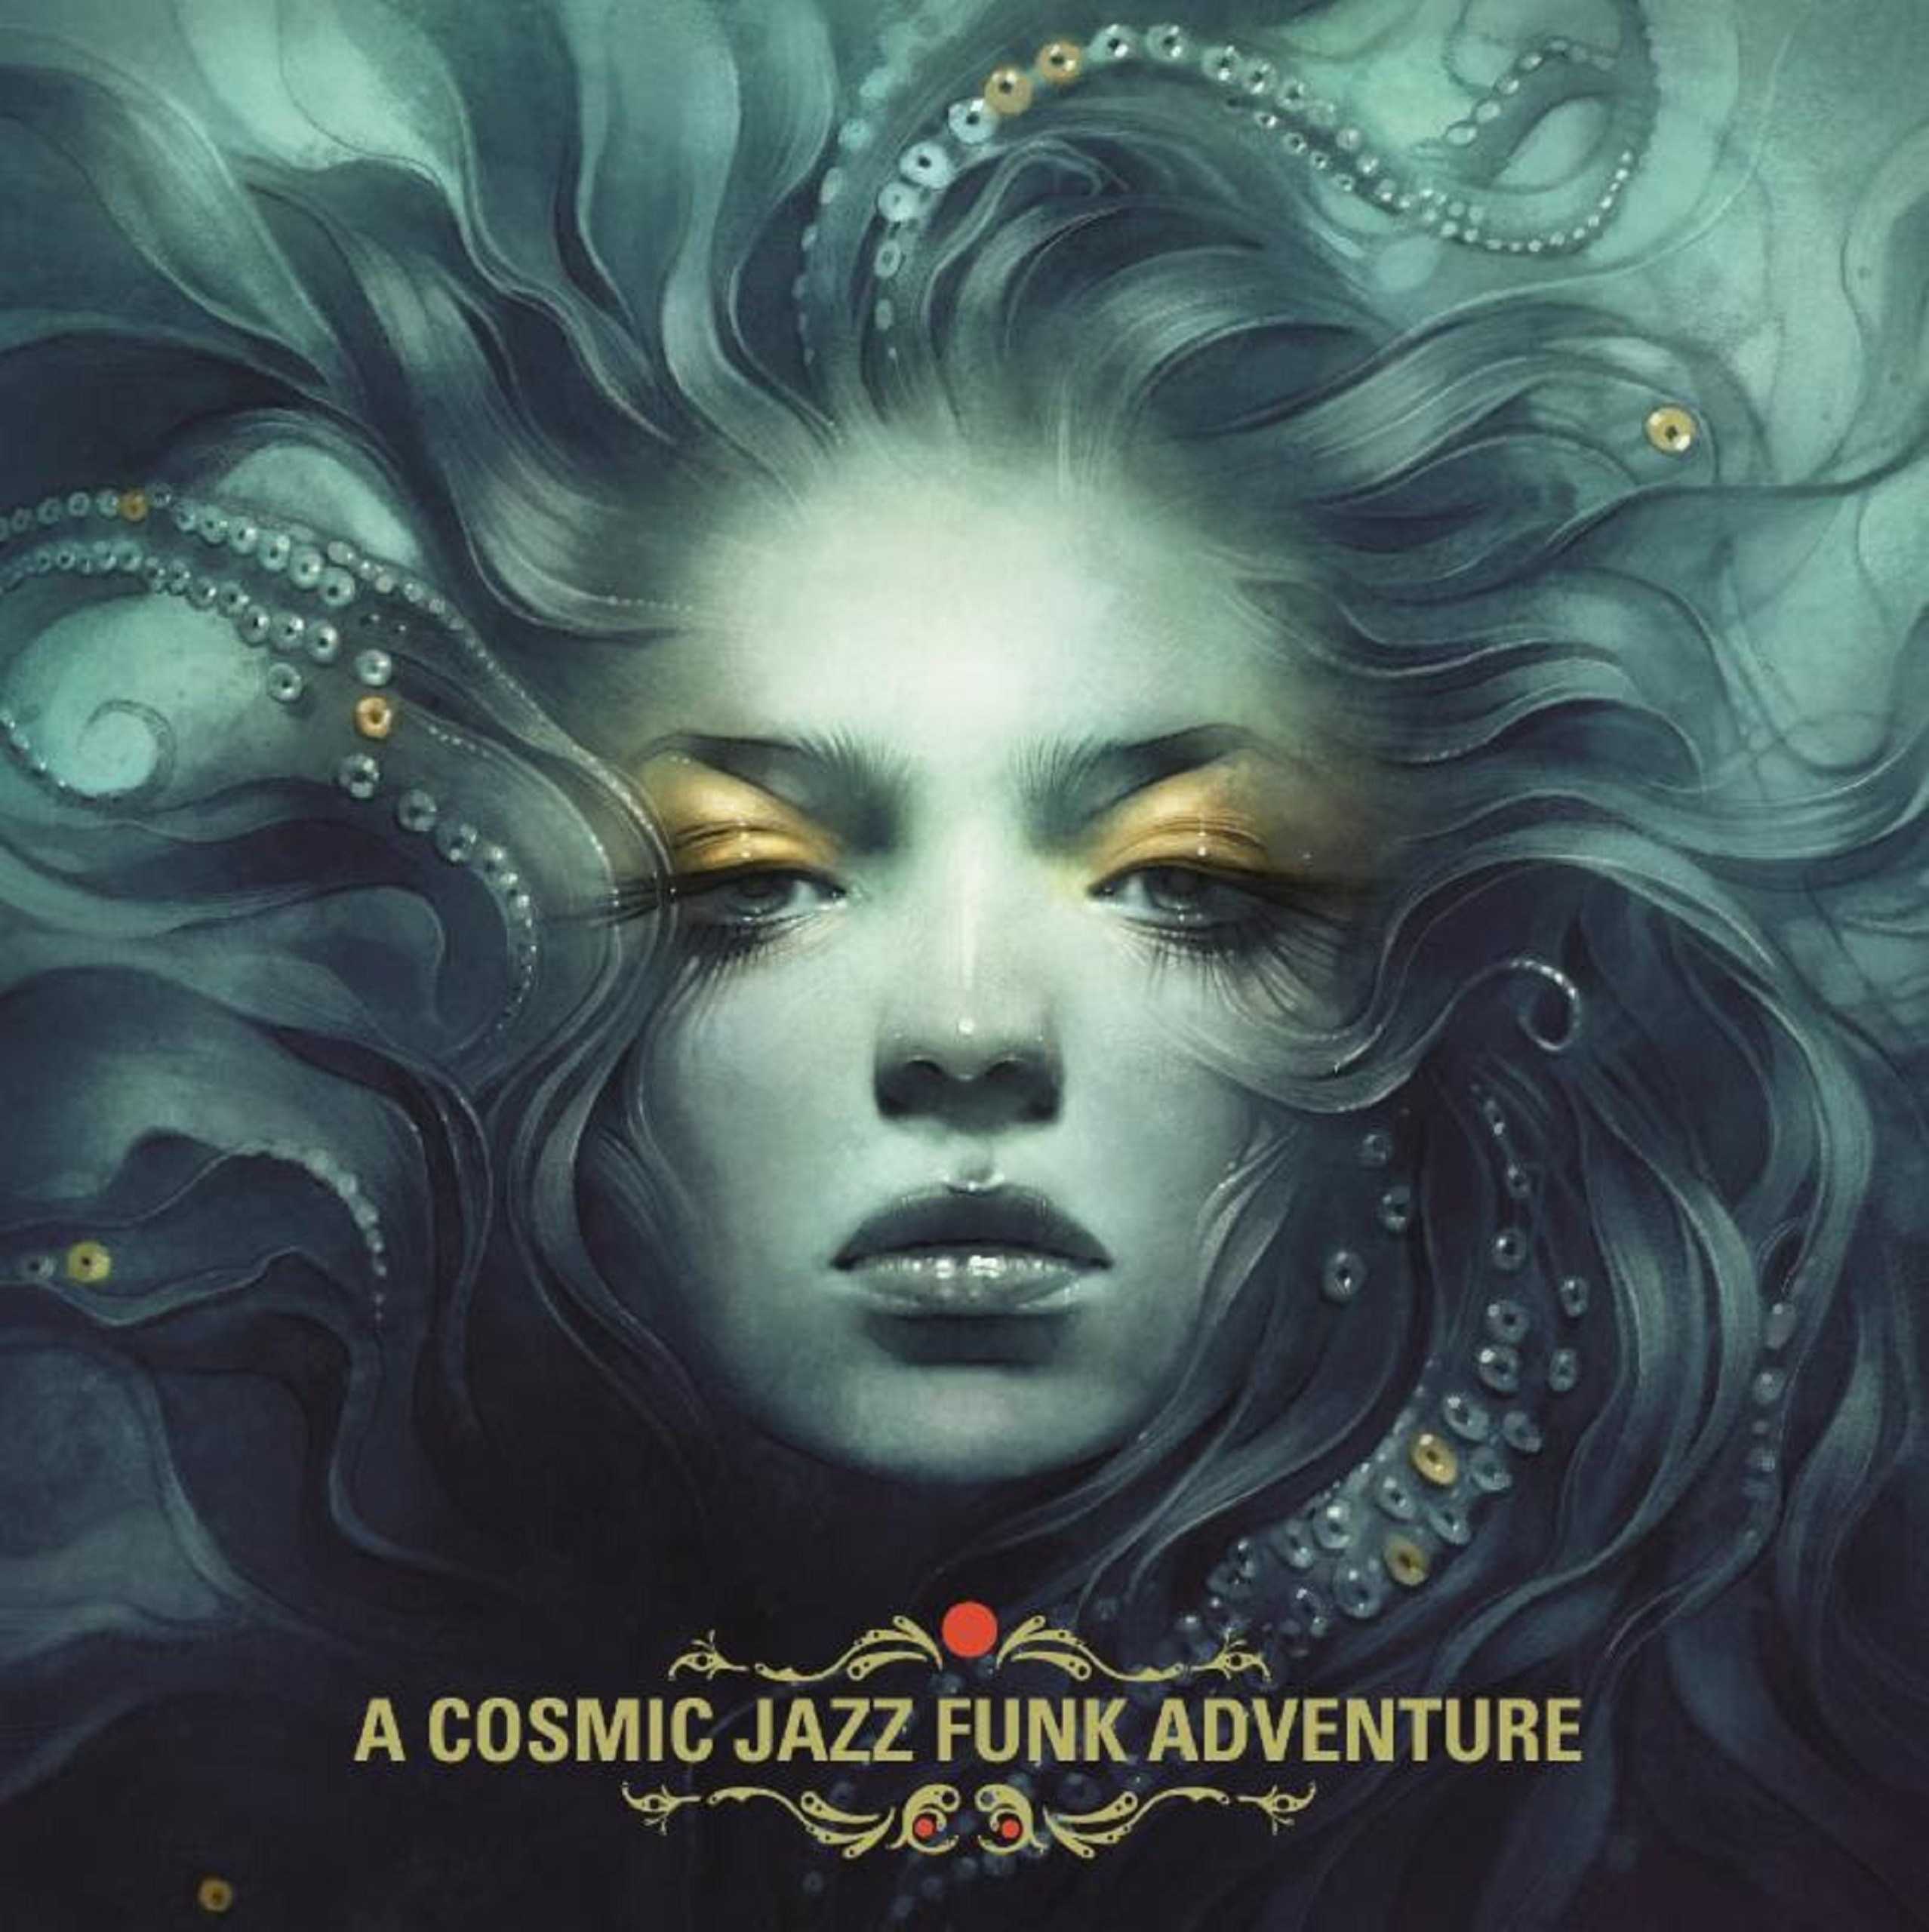 A Cosmic Jazz Funk Adventure